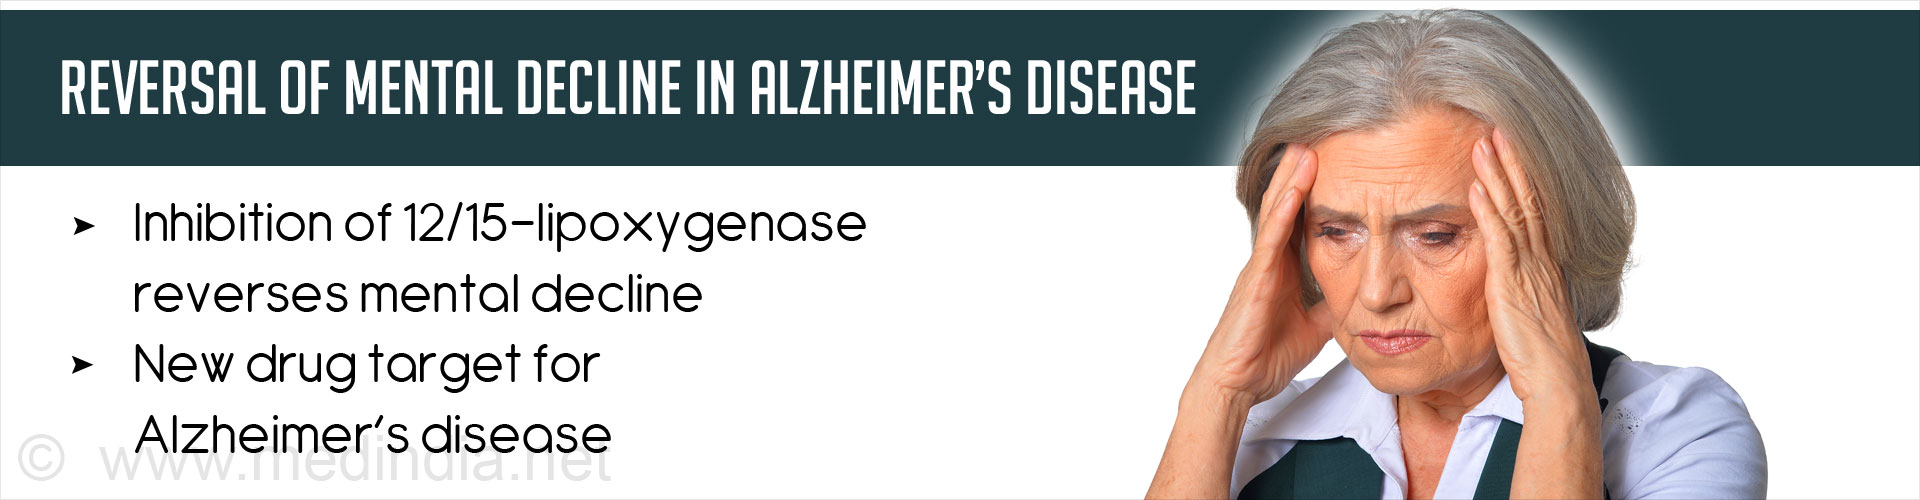 Reversal of Cognitive Decline in Alzheimer's Disease Patients